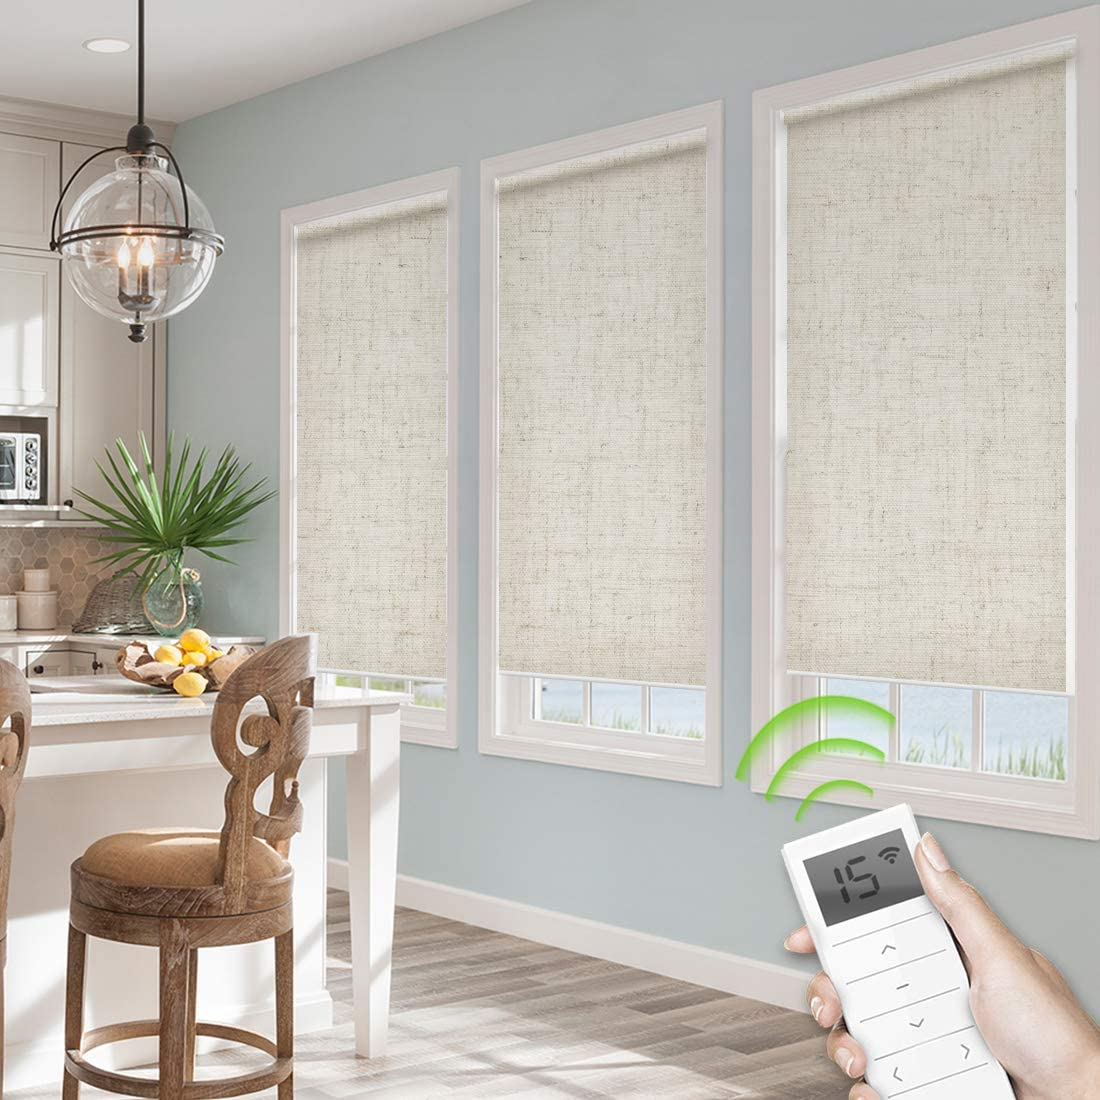 Yoolax Motorized Window Shades Cordless 60 Light Shading Roller Blinds Remote Control Wireless Rechargeable Blind for Home Office Restaurant Kitchen Living Room Customized Size Linen Beige